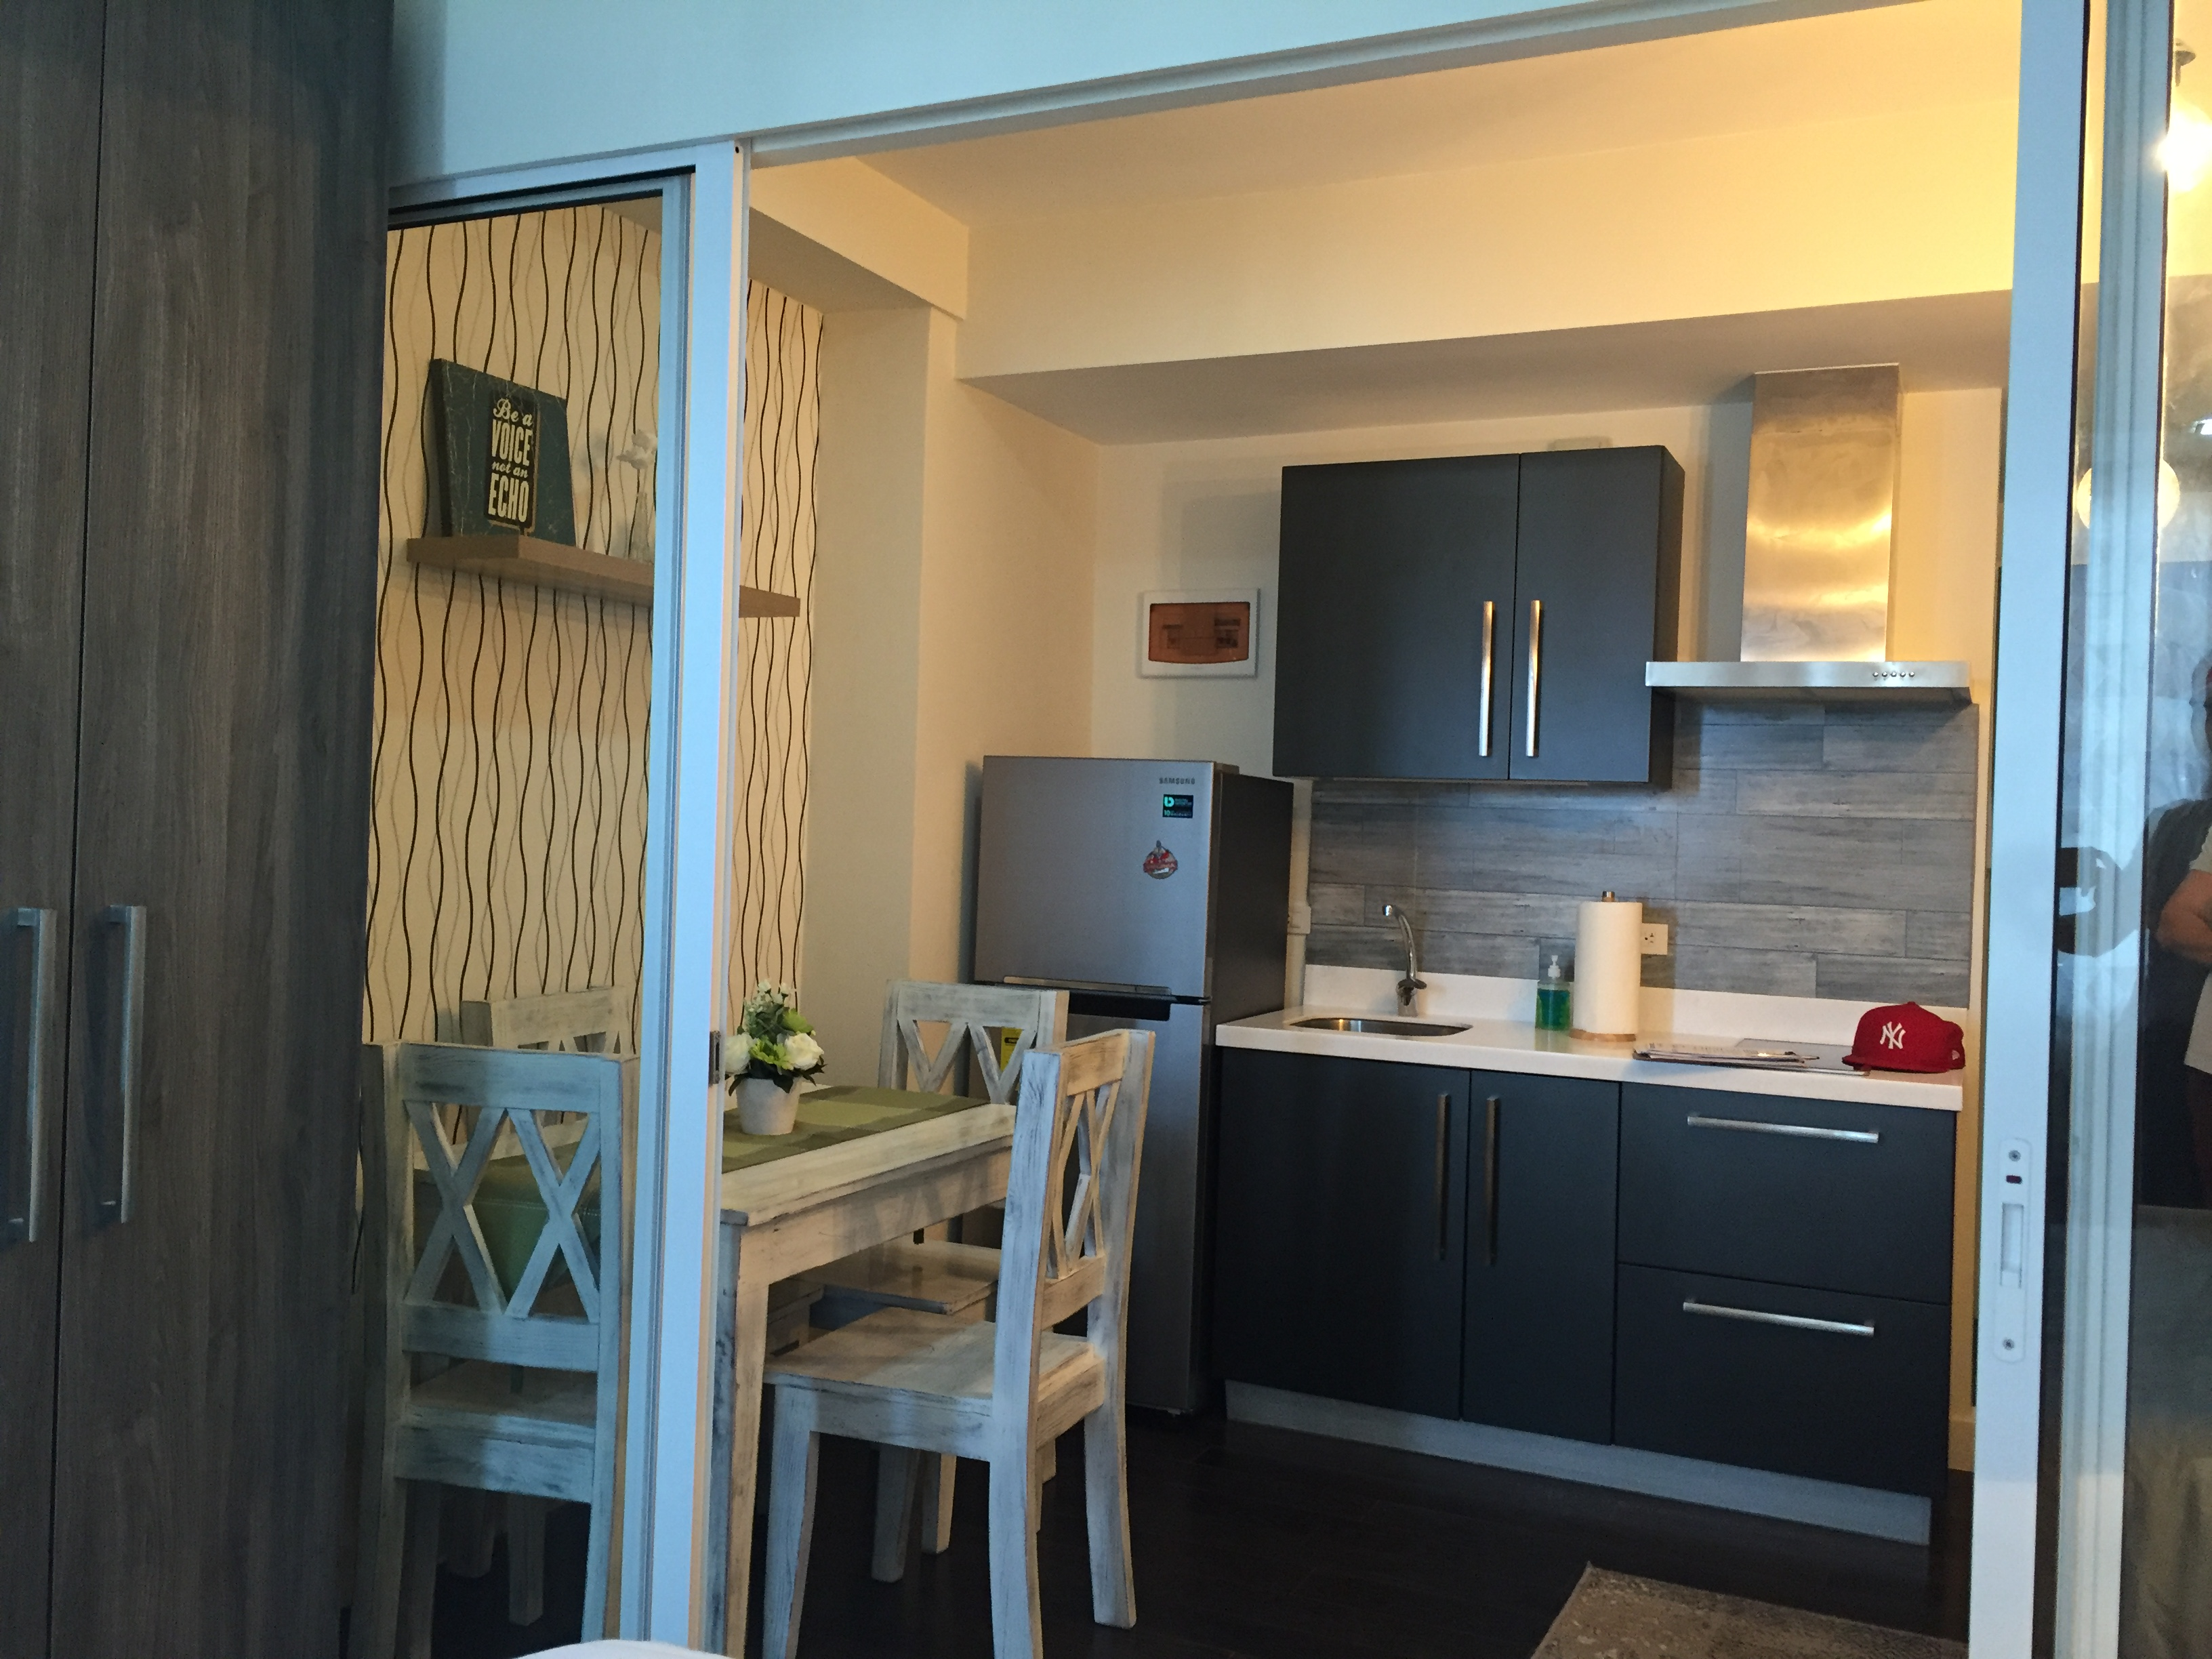 Cozy Acqua Residences Fully Furnished Condo for Lease by PropertySourcePh